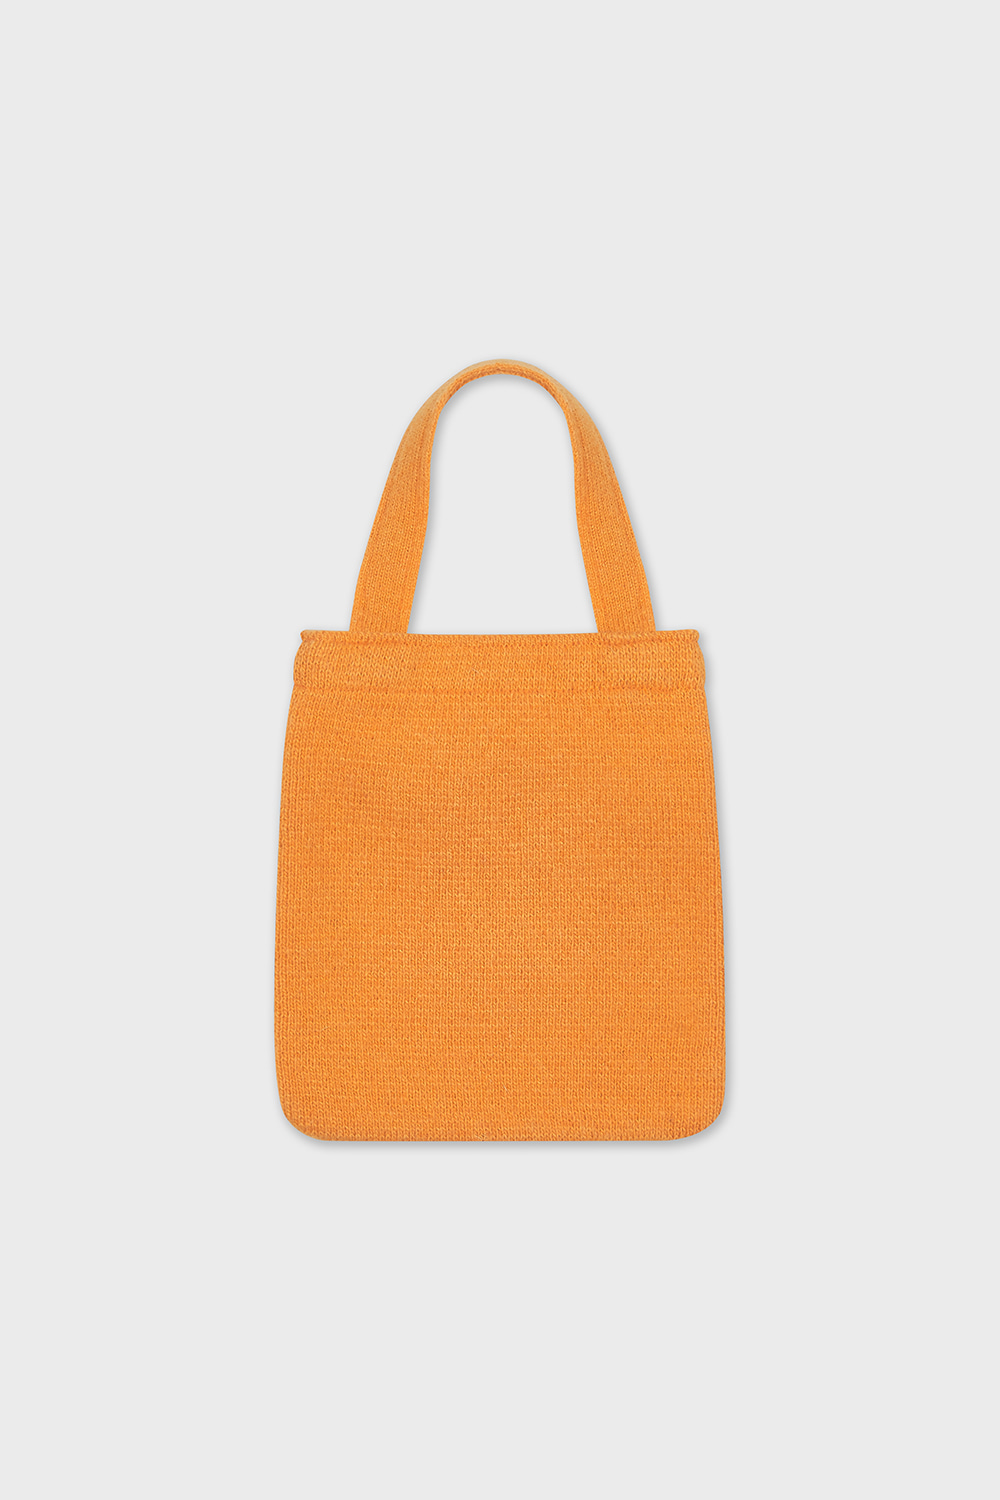 FISH KNIT BAG (ORANGE)